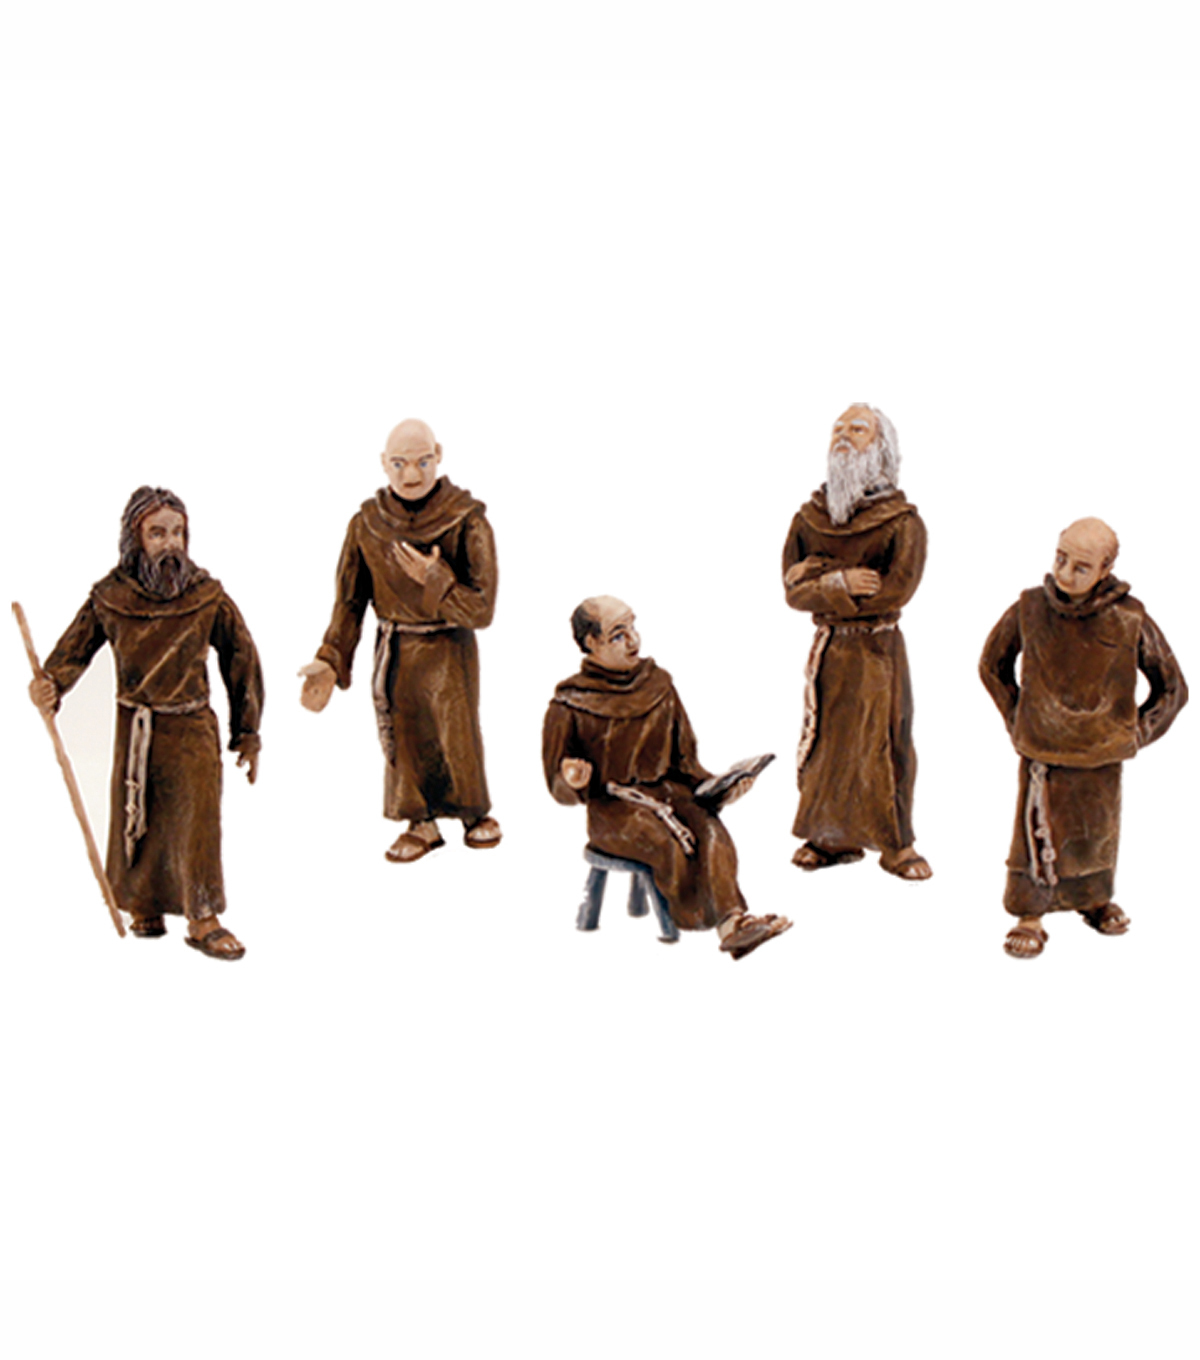 Friars/Monks Figurines 5/Pkg-